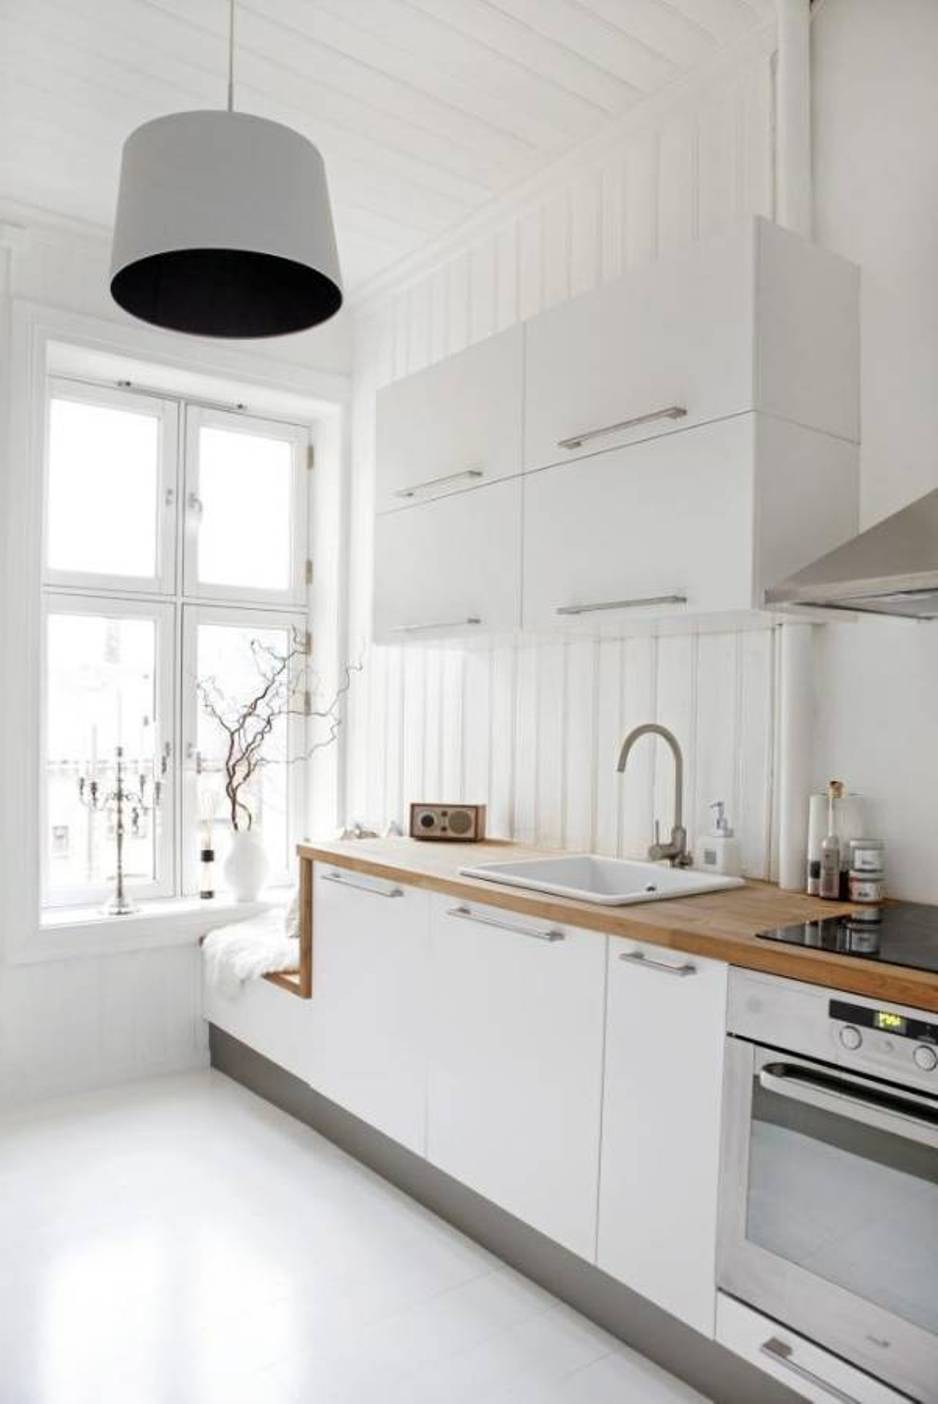 10 amazing scandinavian kitchen interior design ideas for Design your kitchen